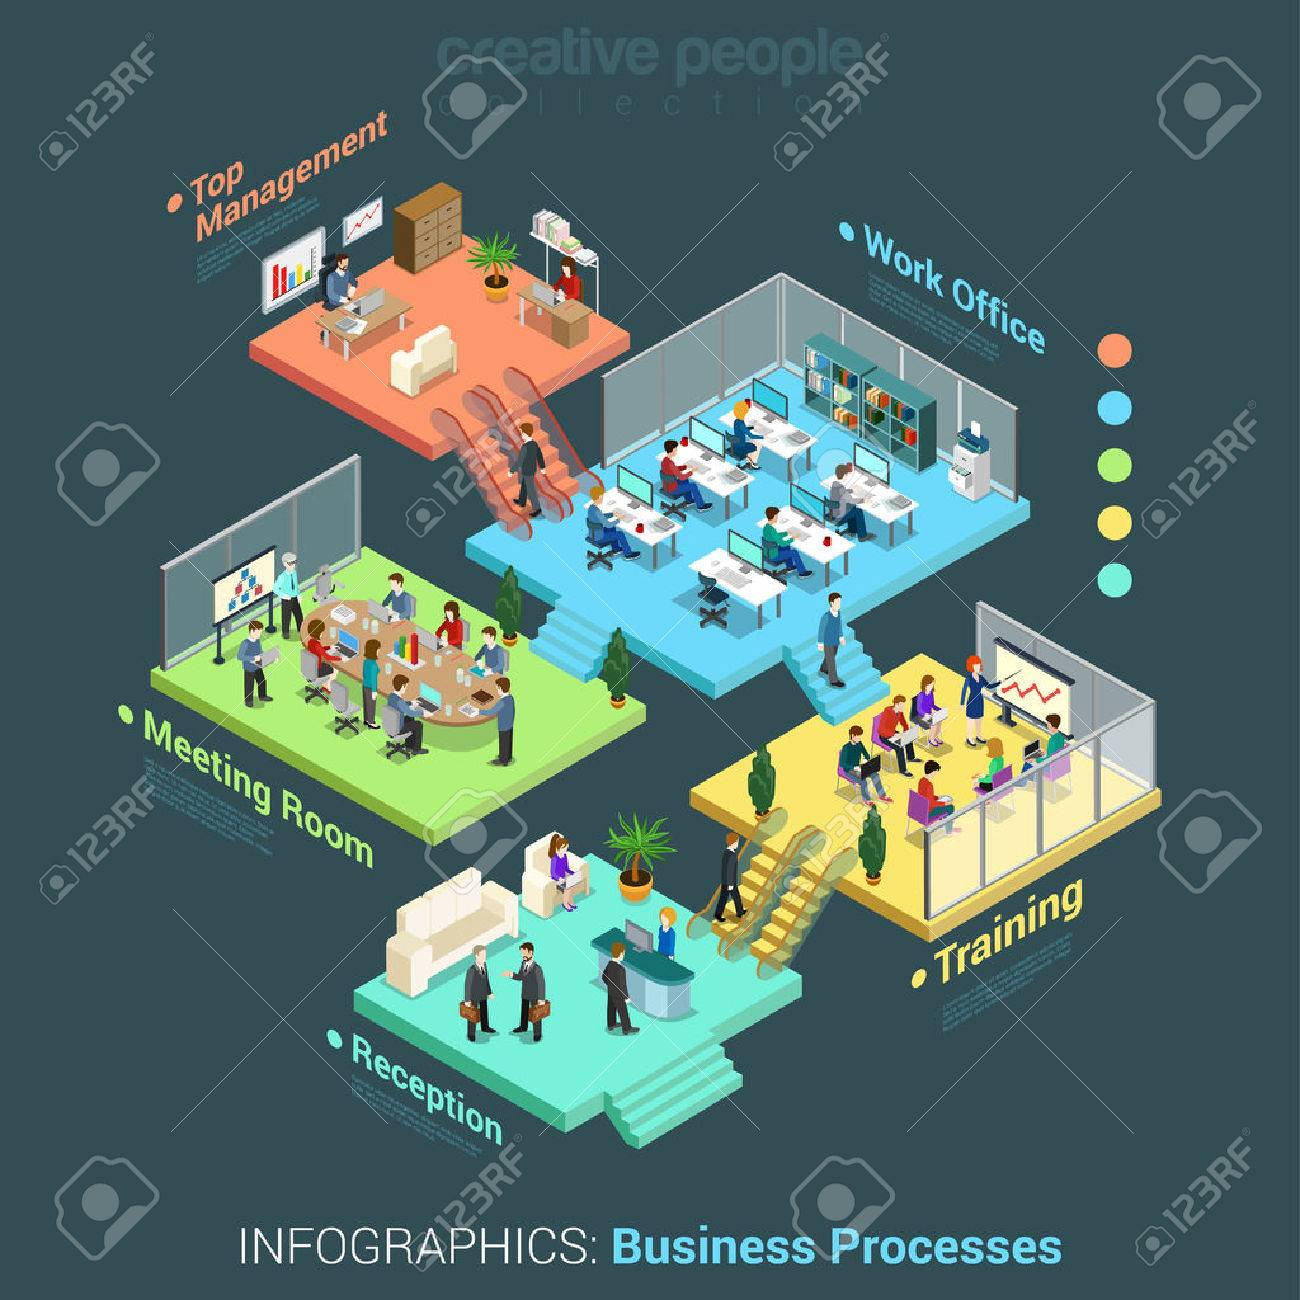 Flat 3d isometric business office floors interior rooms concept vector Stock Vector - 54532841